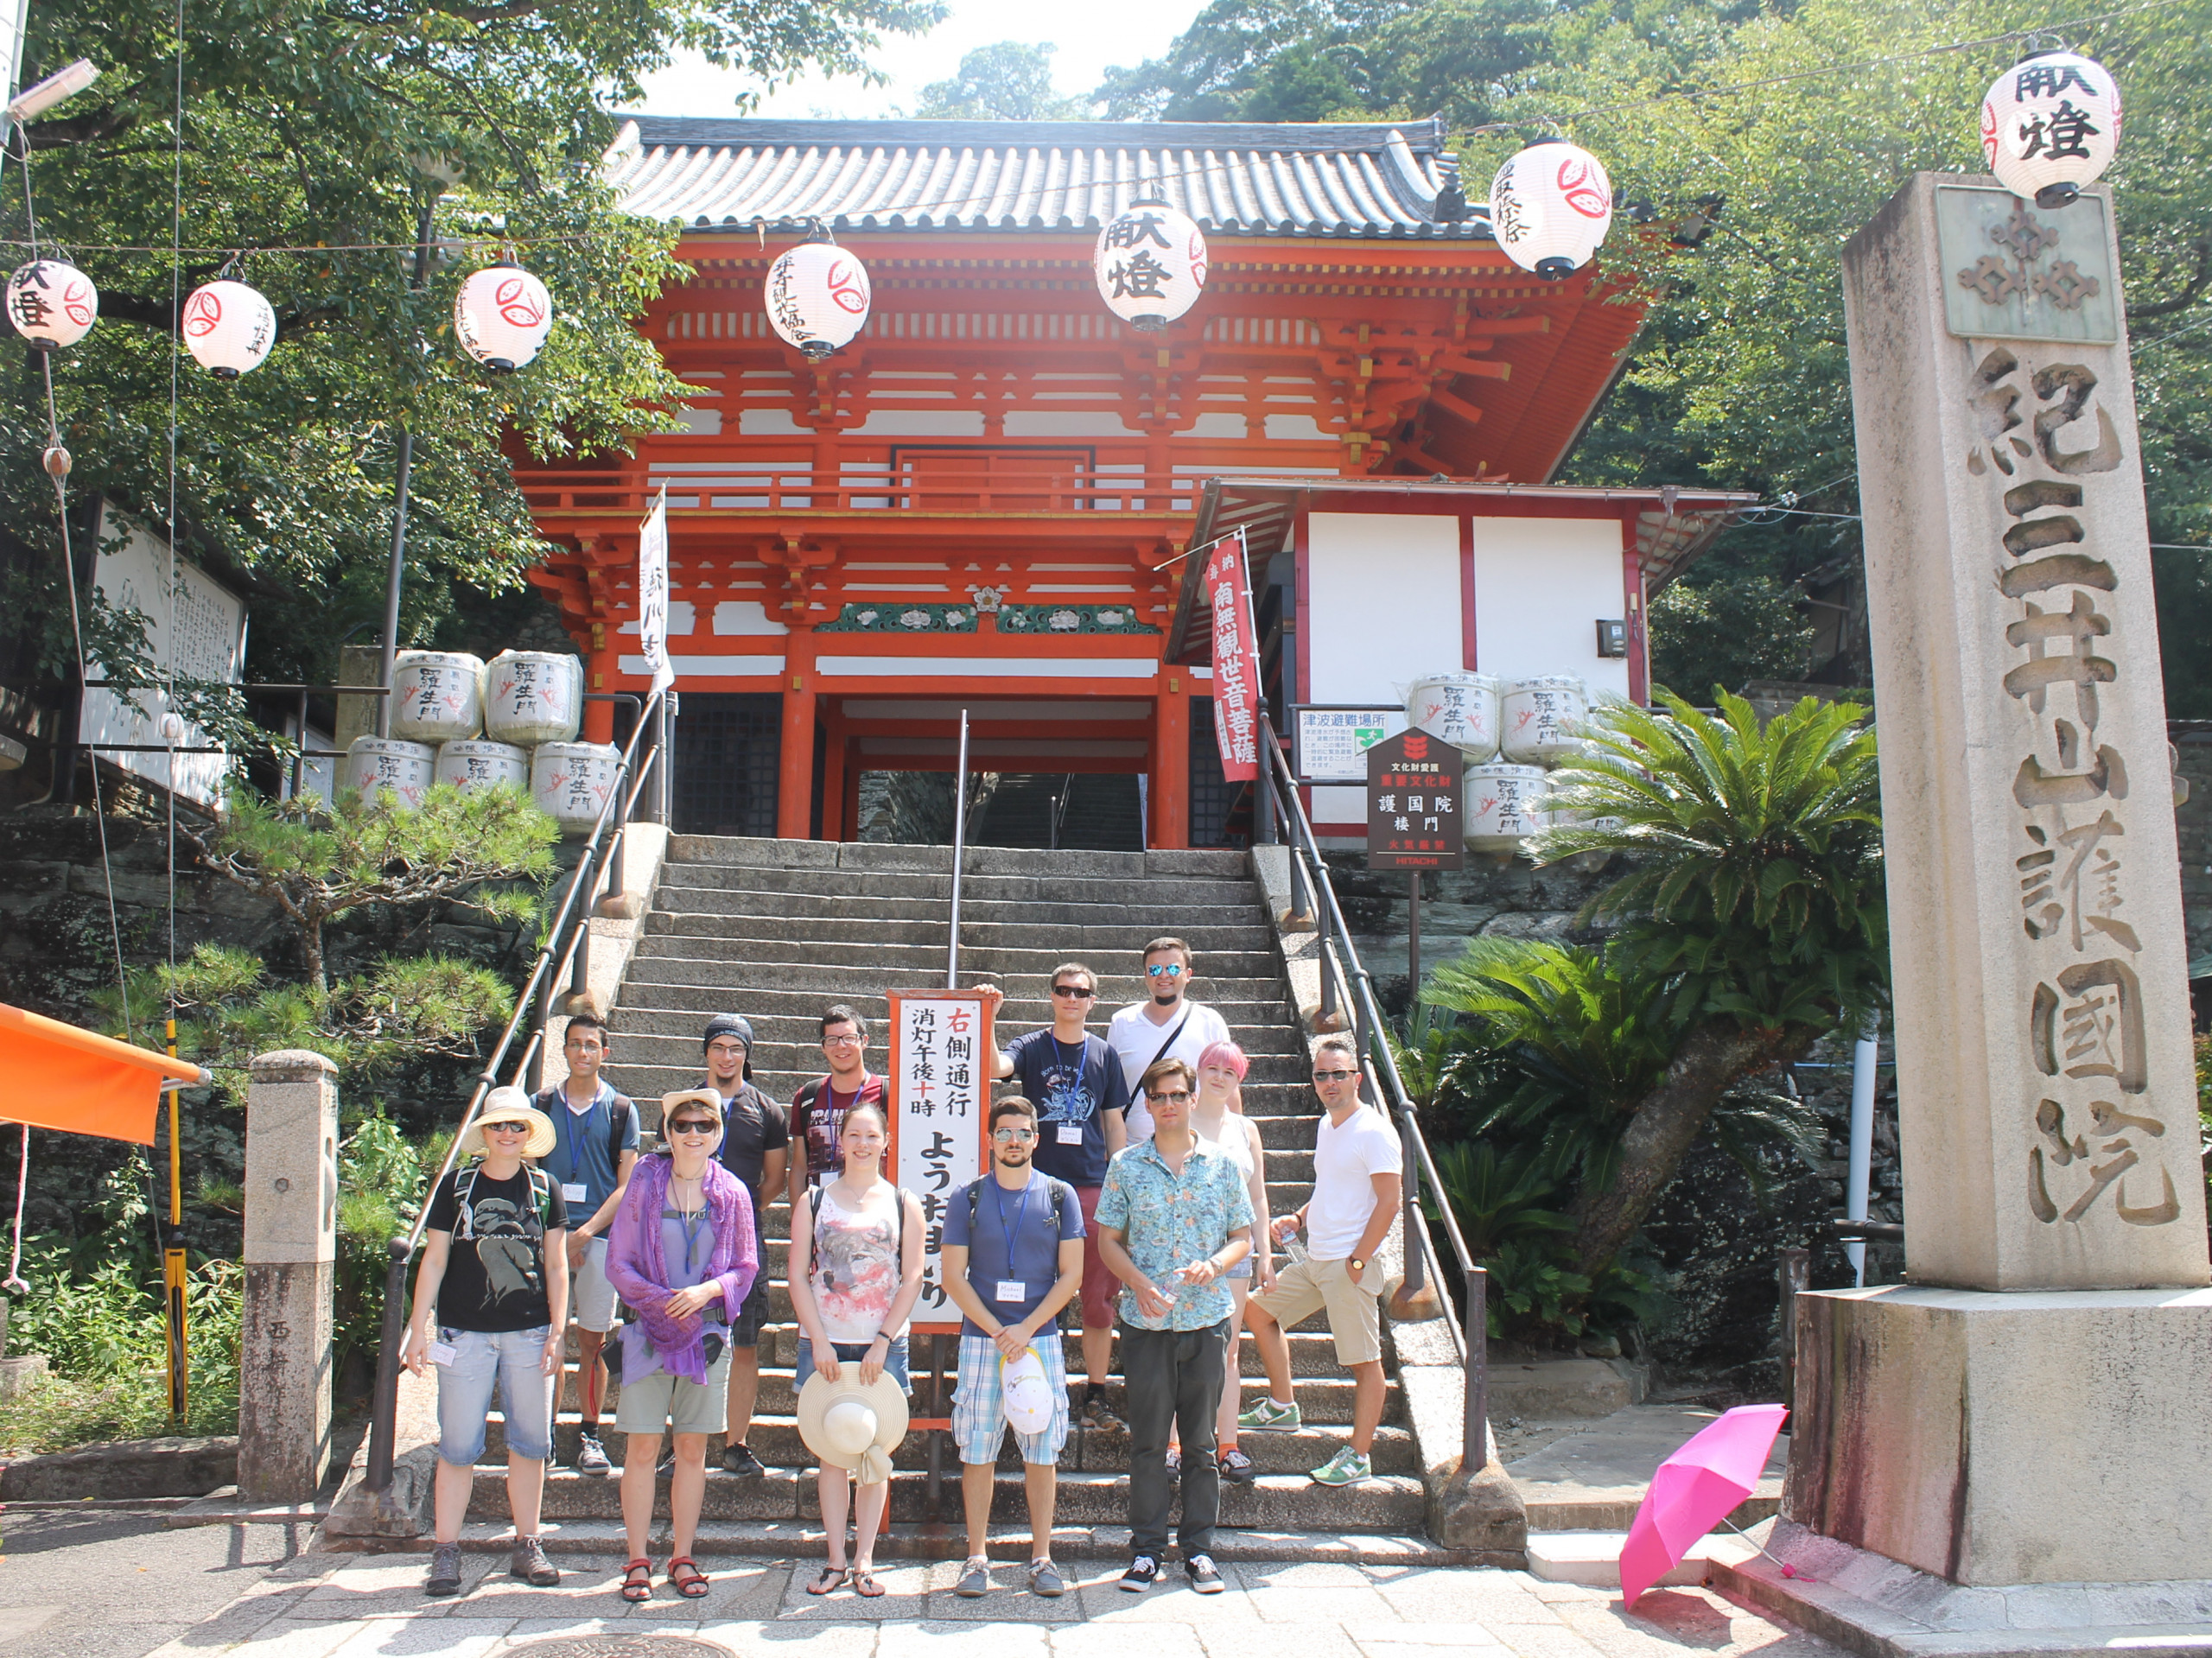 Teenagers from Austria in Japan. The group stands in front of a Japanese temple entrance.